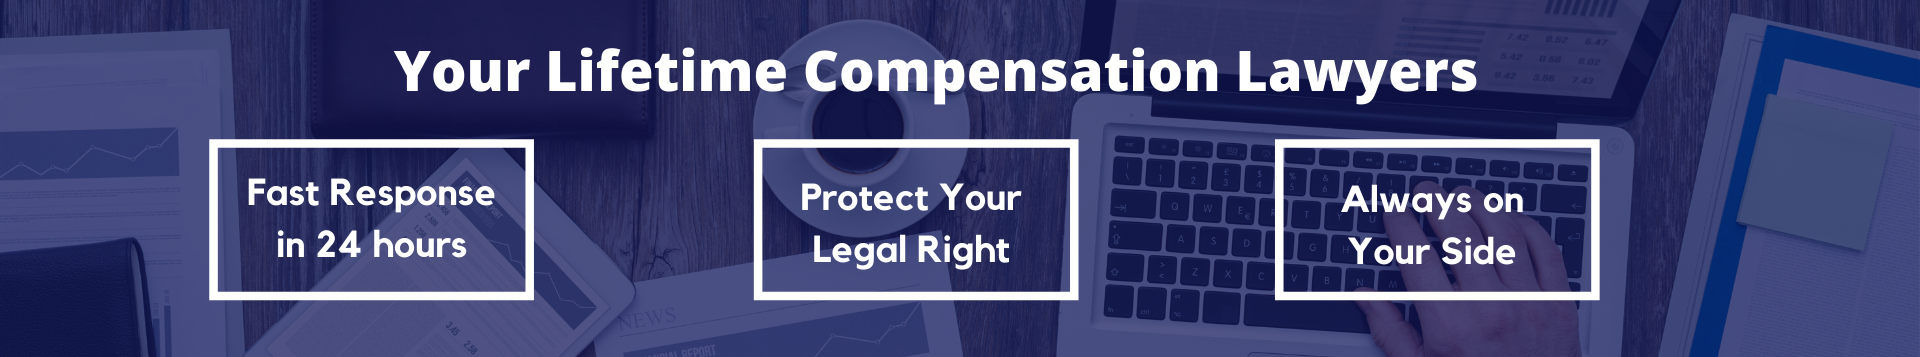 Your lifetime compensation lawyers Fast response in 24 hours Protect your legal right Always on your side